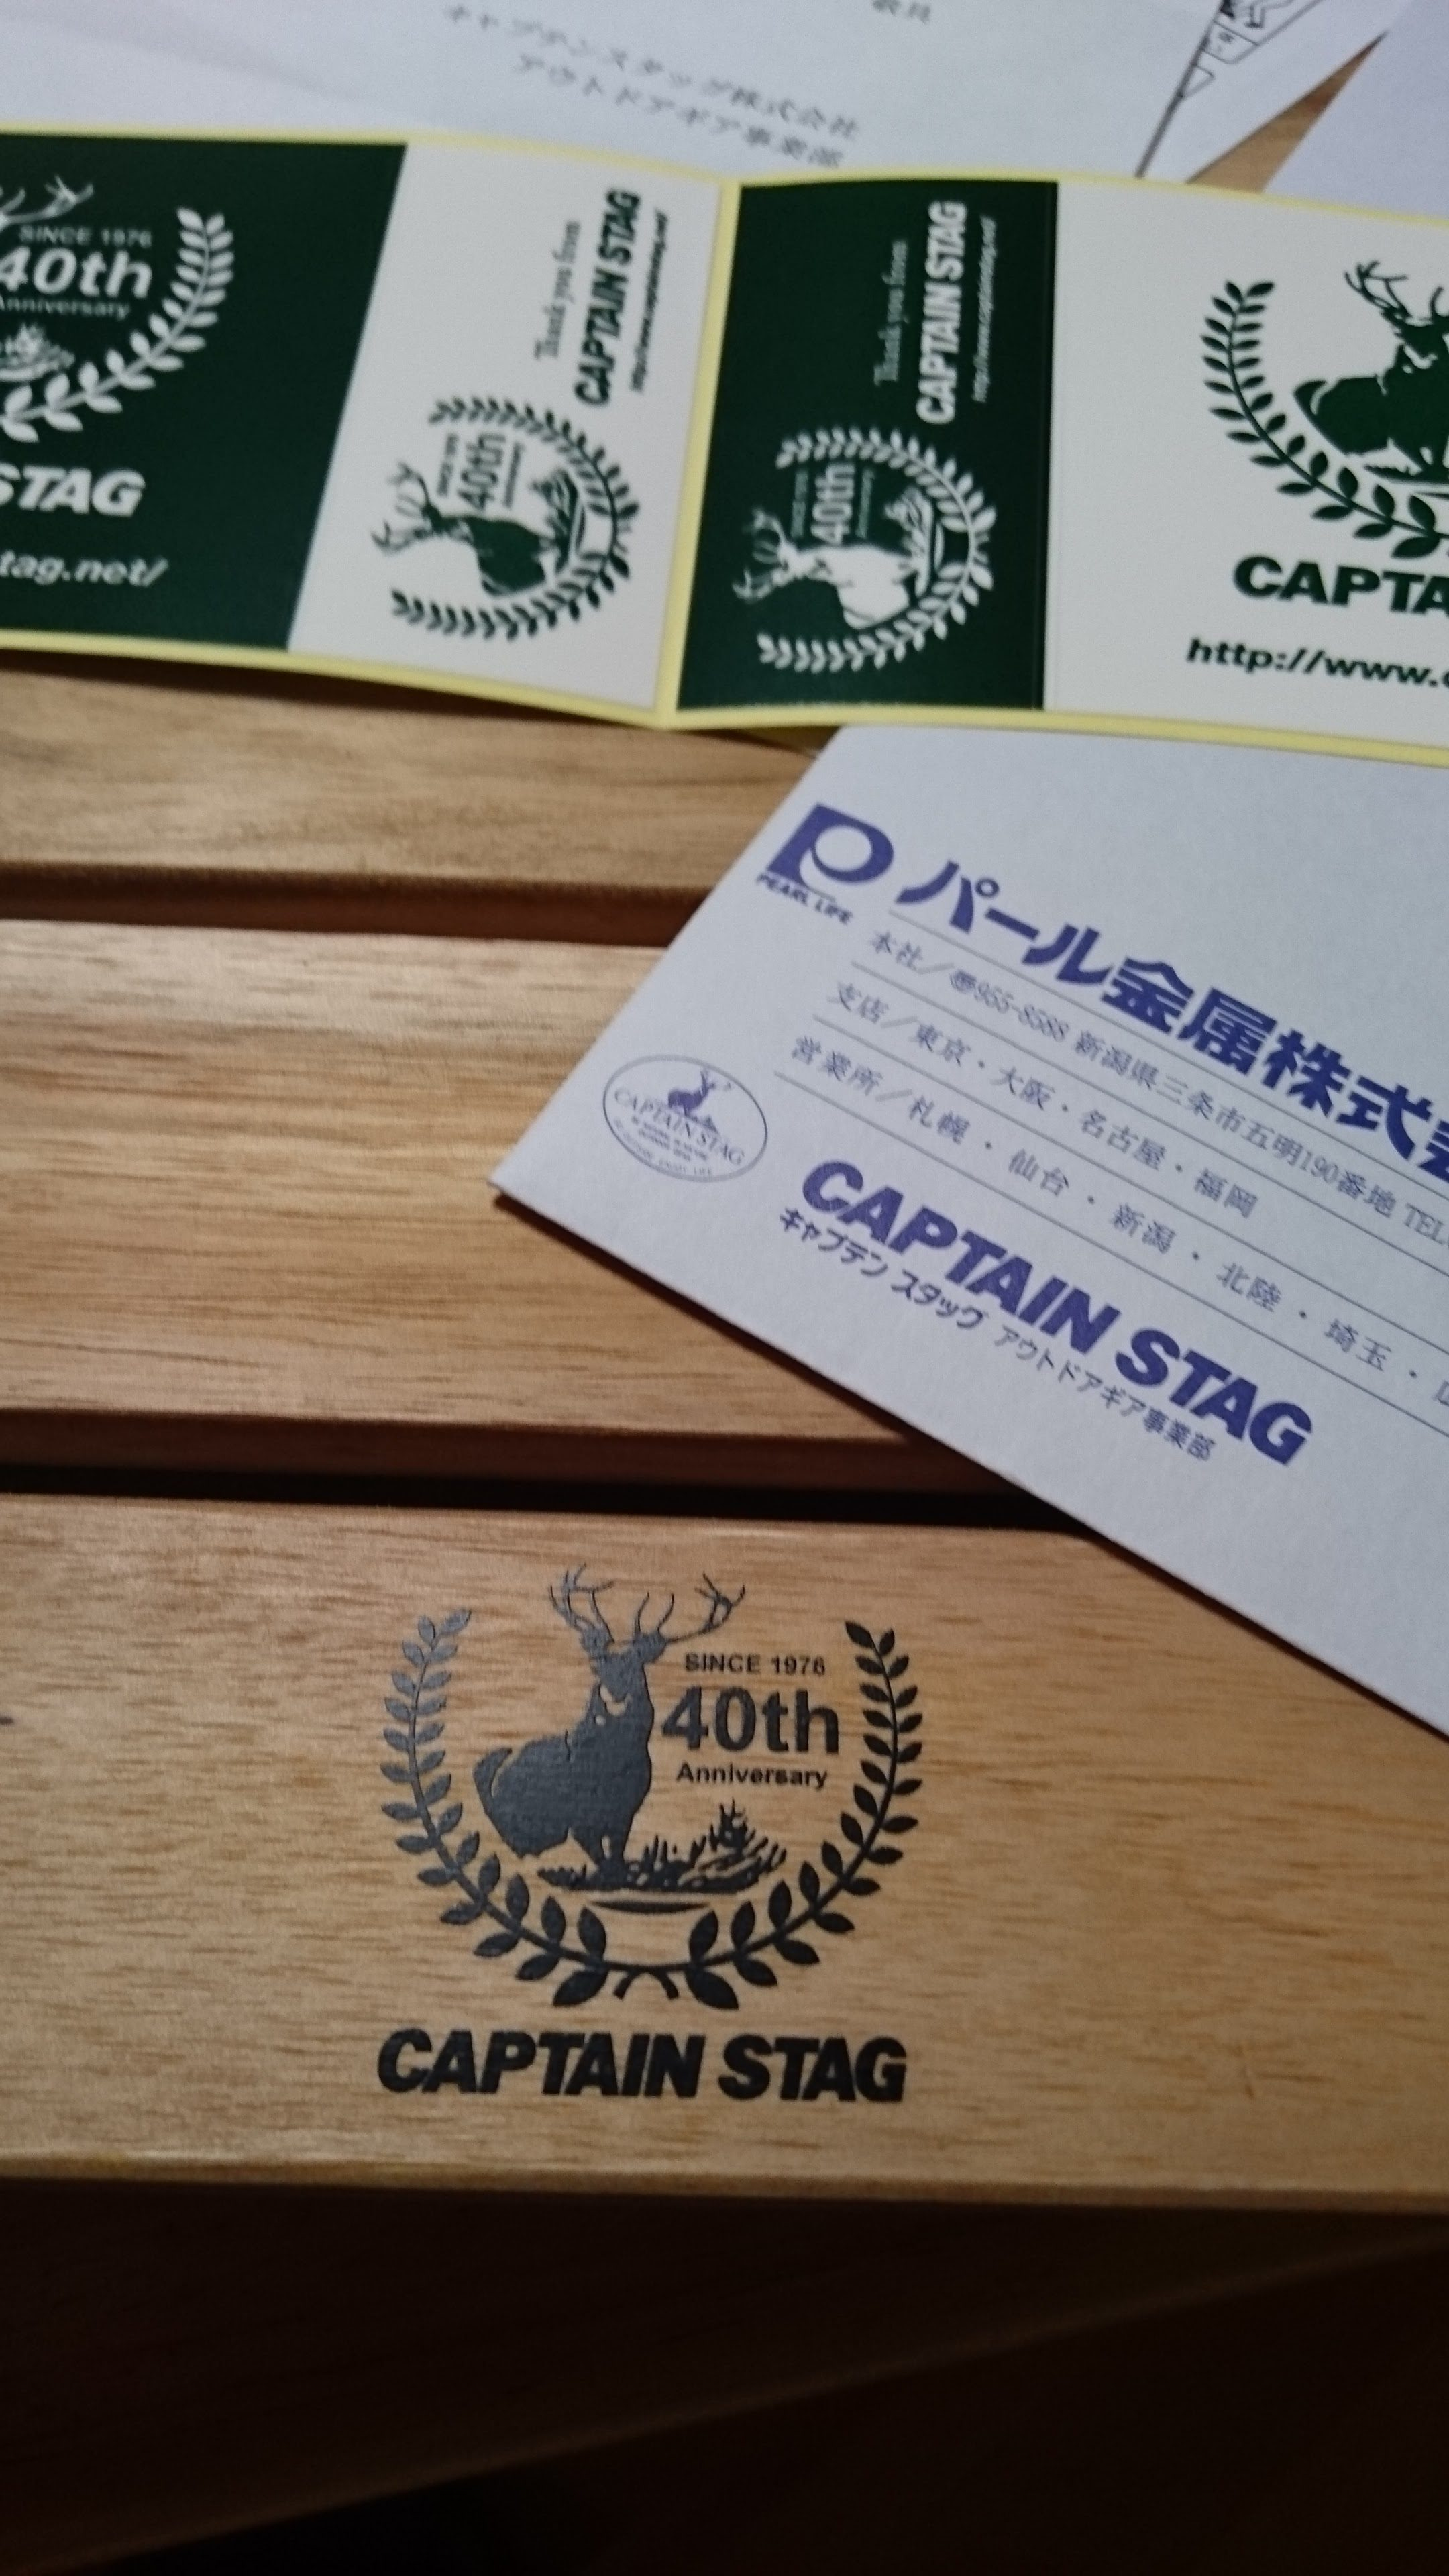 CAPTAIN STAG 40th アニバーサリー